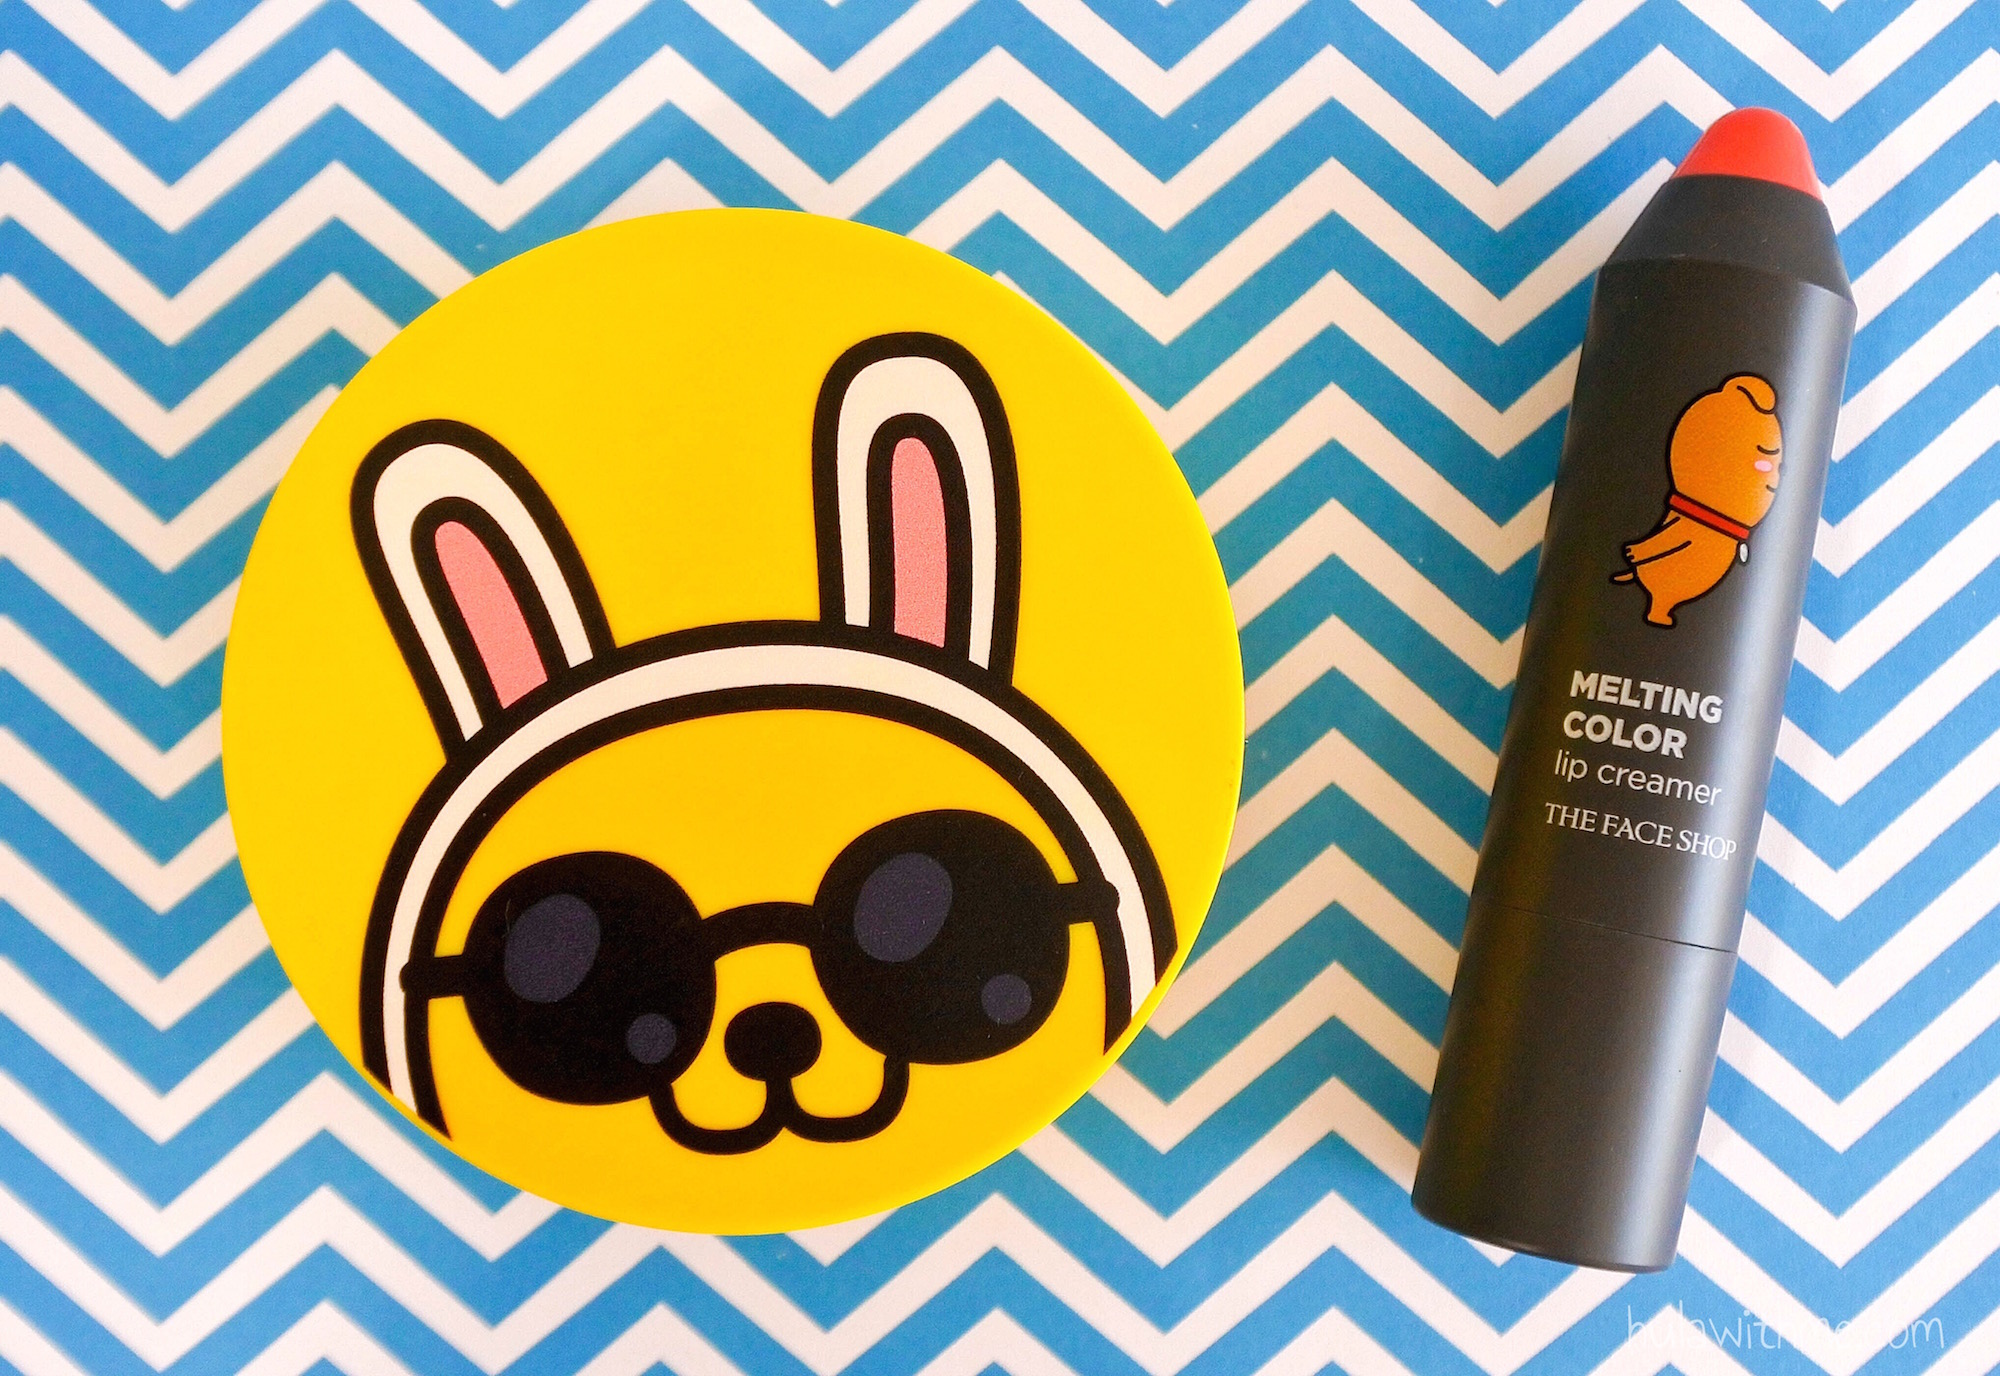 Reviewing The Face Shop x KaKao Friends Sunscreen Cushion + Lip Creamer.